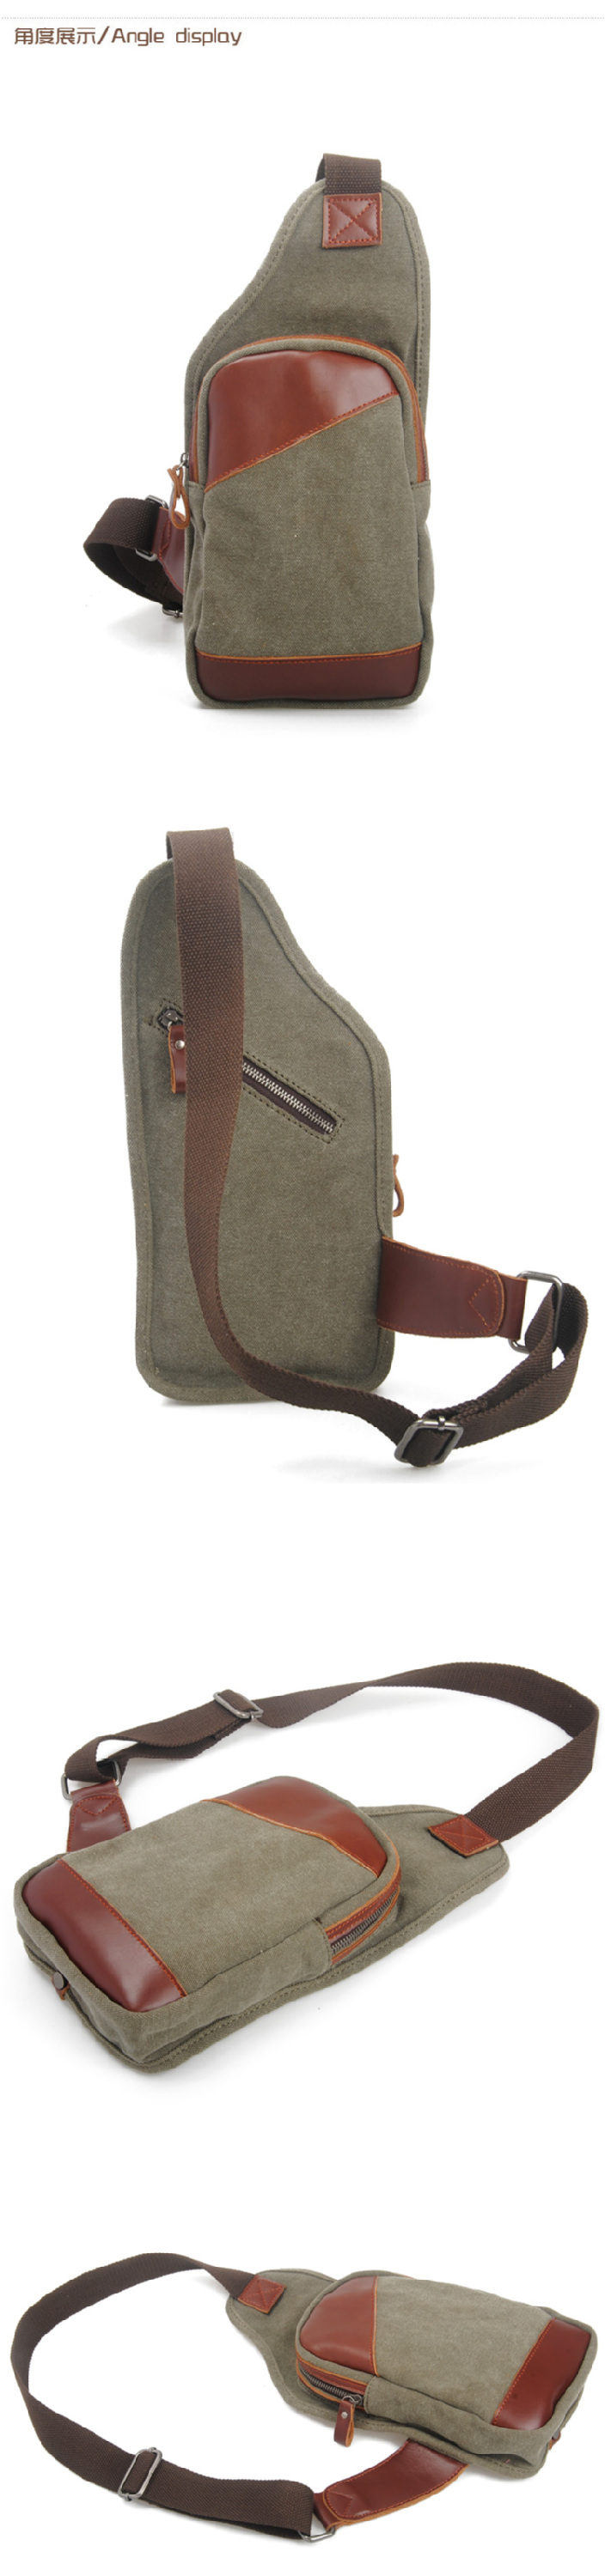 8670 Unique Style Khaki Canvas Cross Body Backpack Cross Body ...